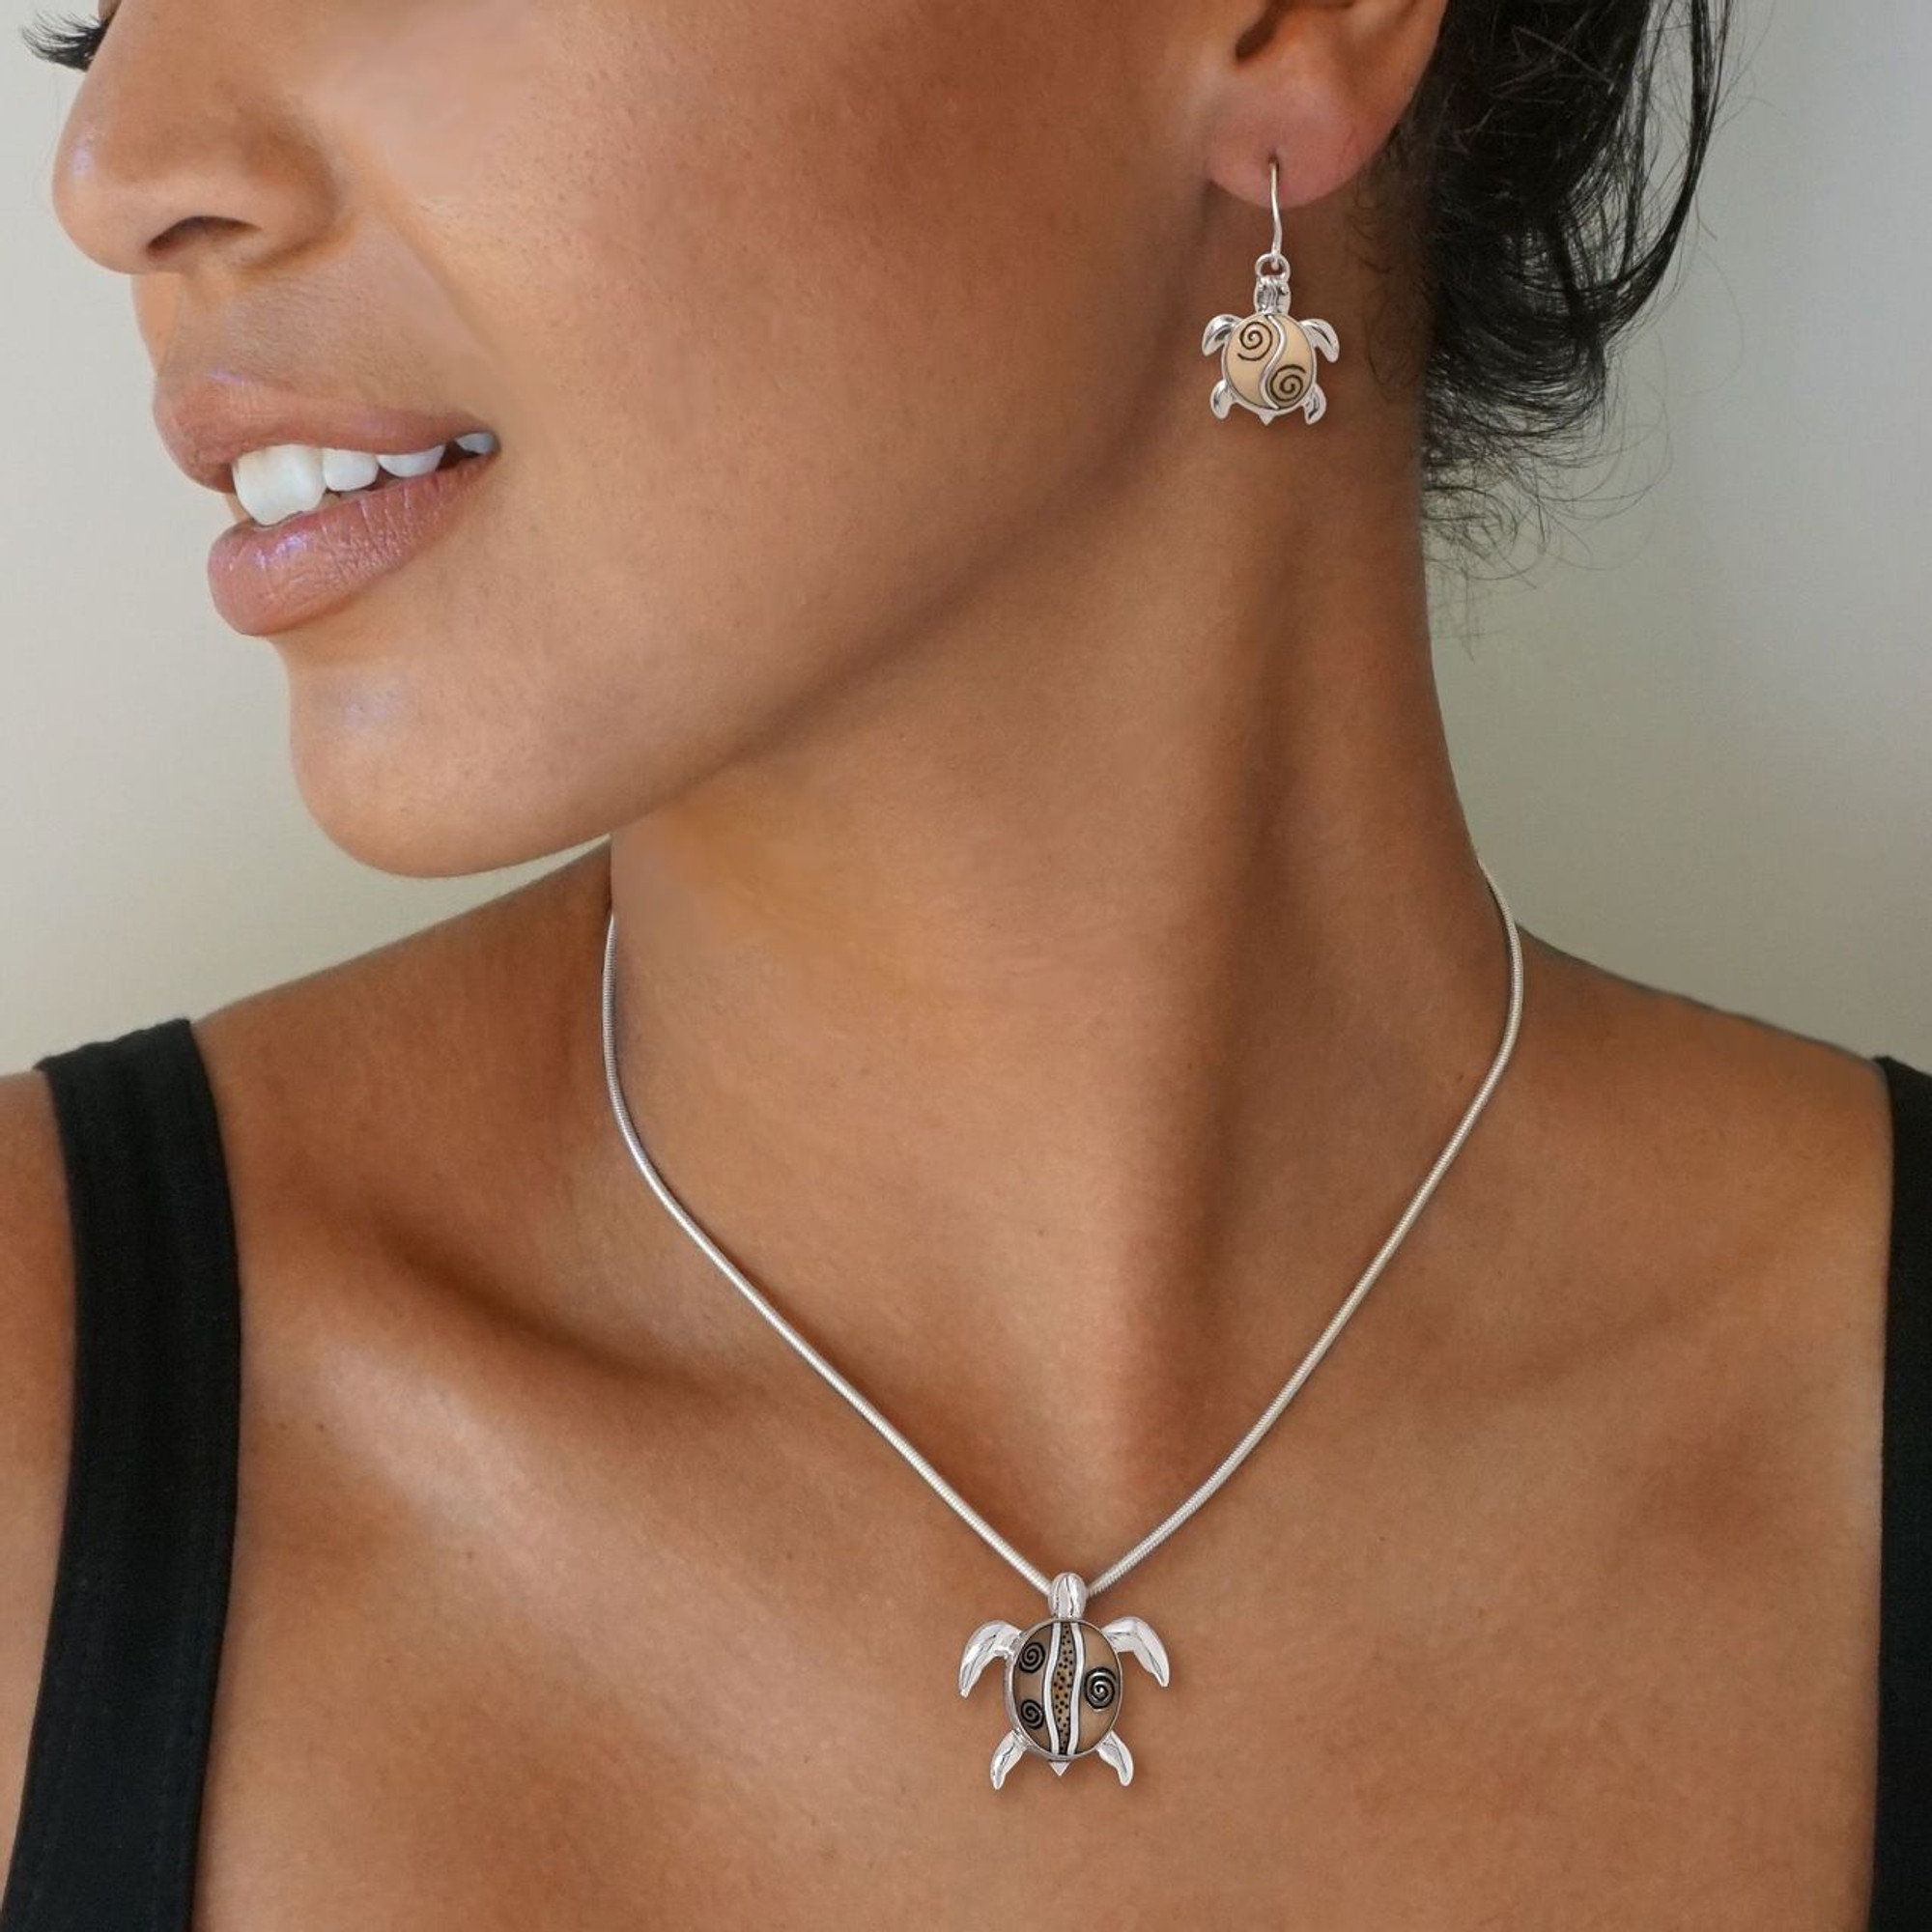 Amber Sterling Silver Turtle Pendant Necklace Chain 18